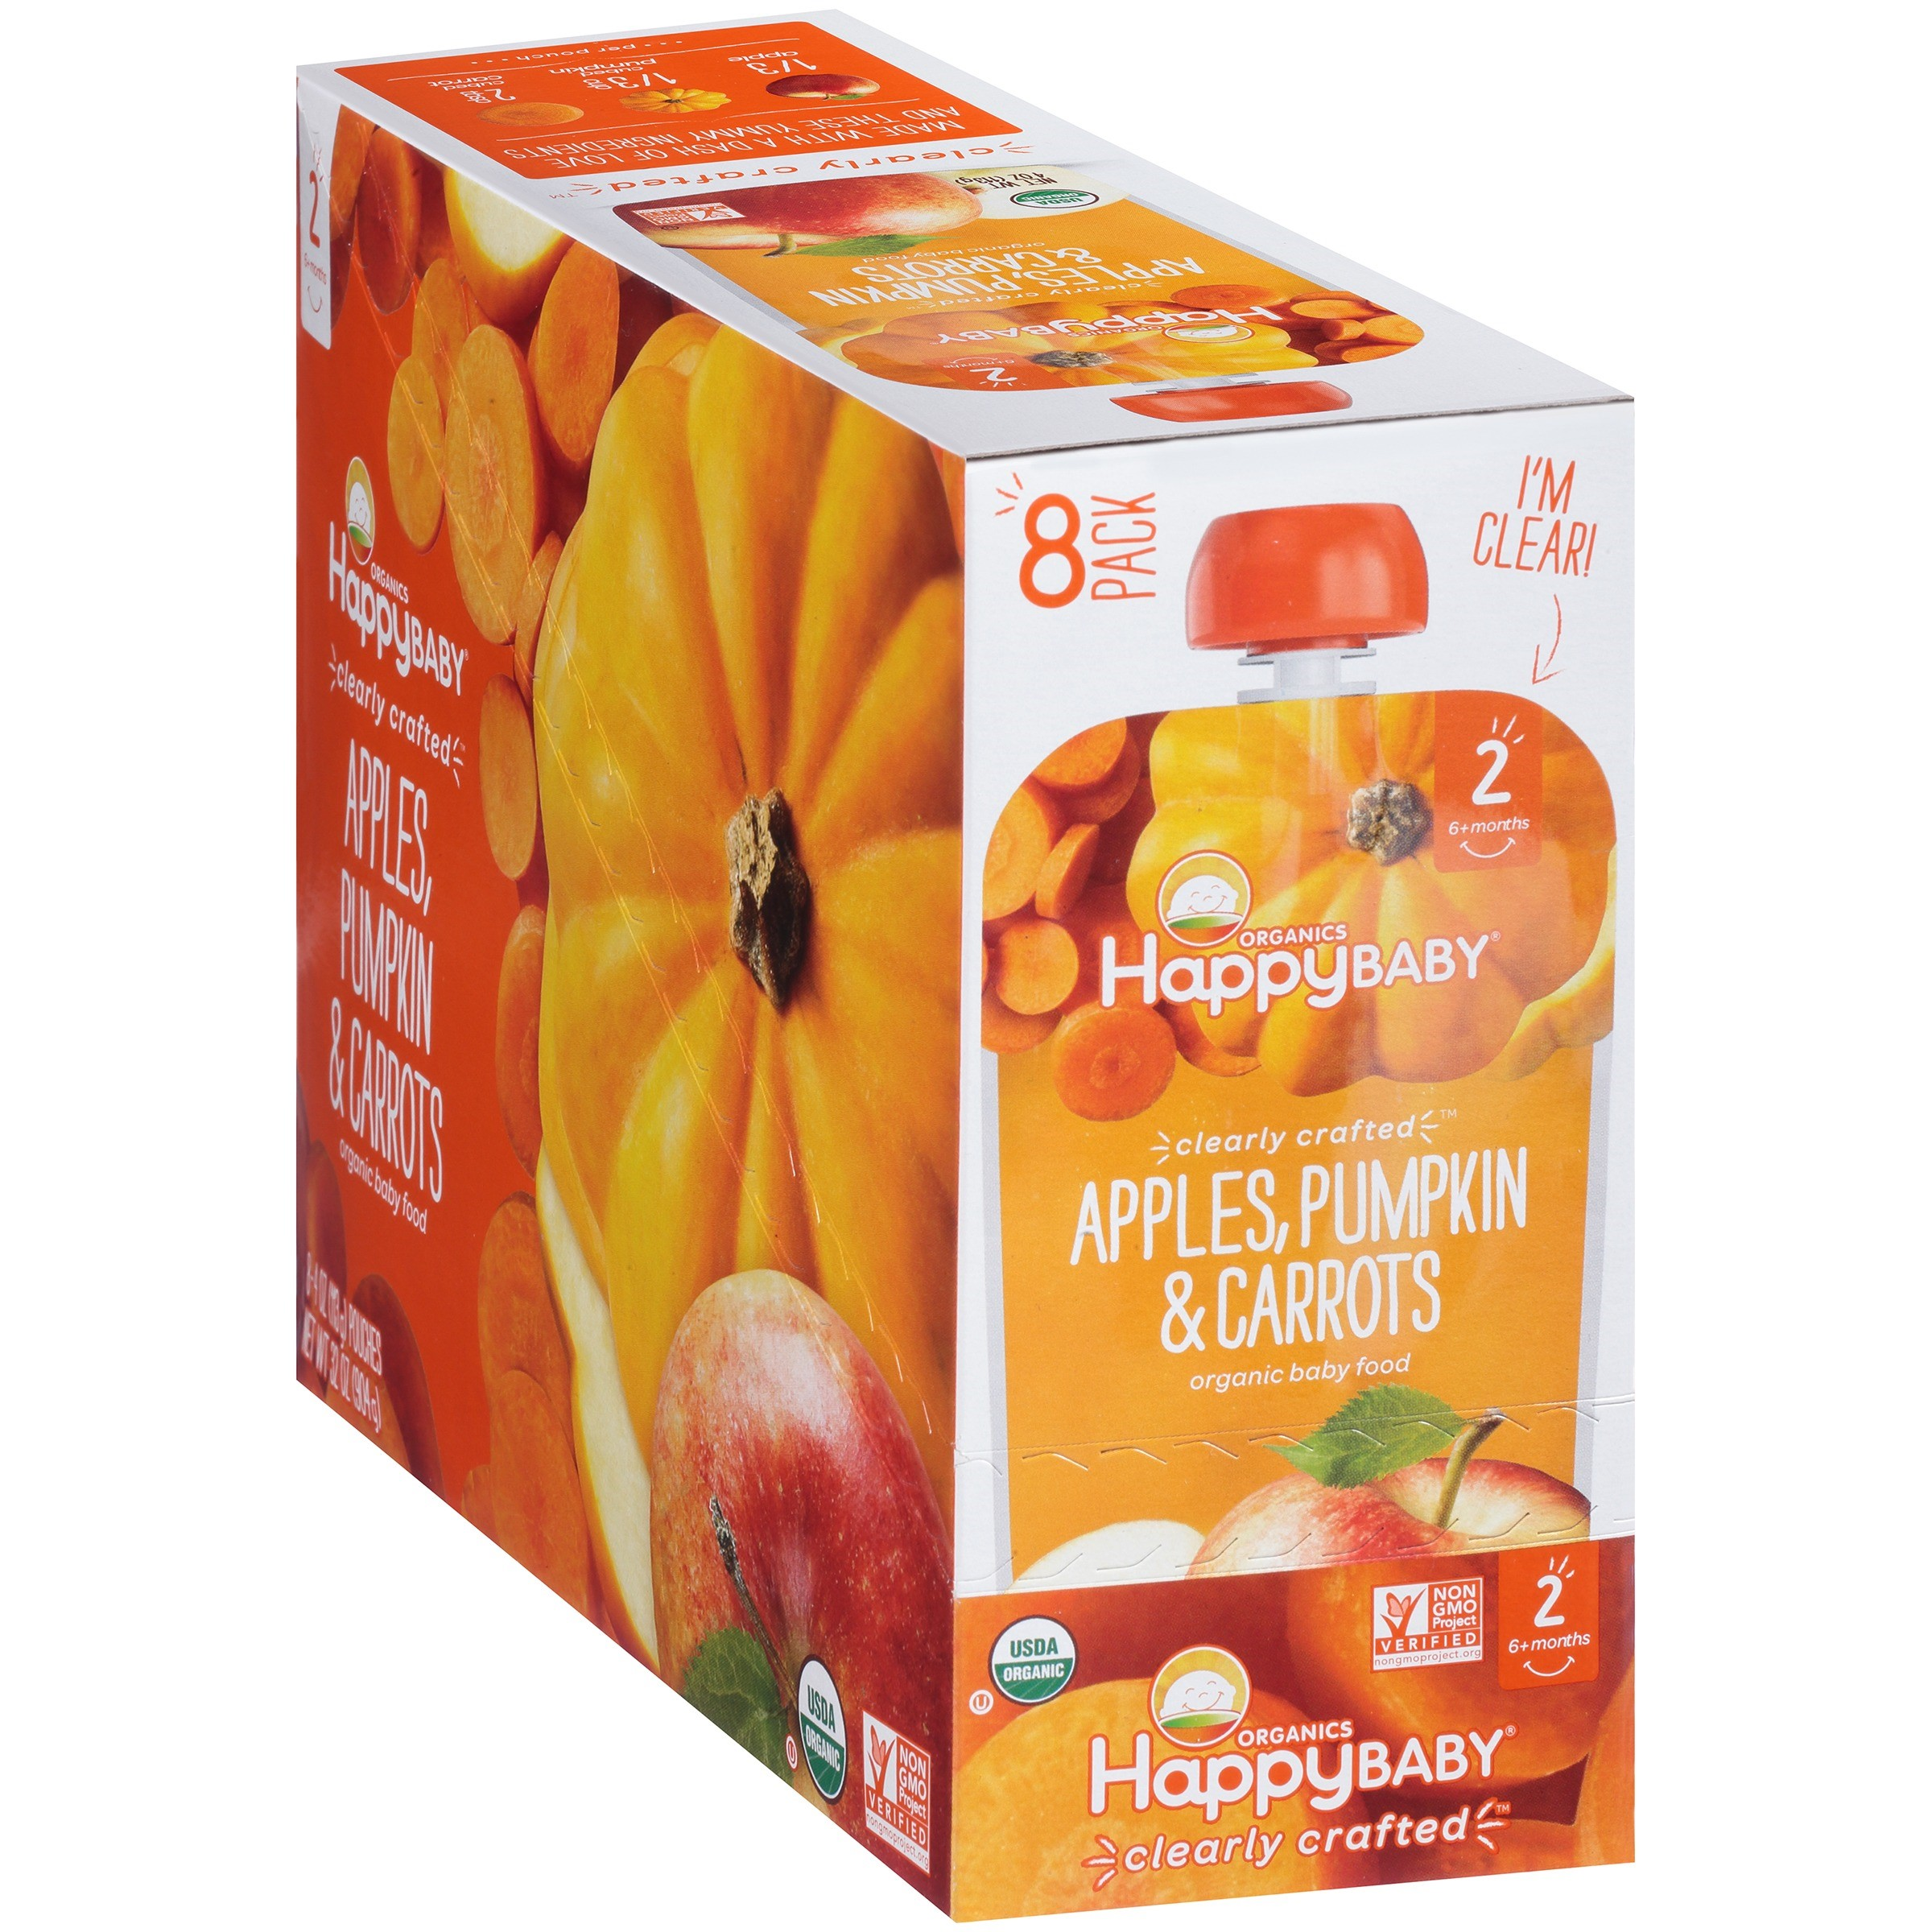 Happy Baby® Organics Apples, Pumpkin & Carrots Baby Food 4 oz. Pouch, 8 count